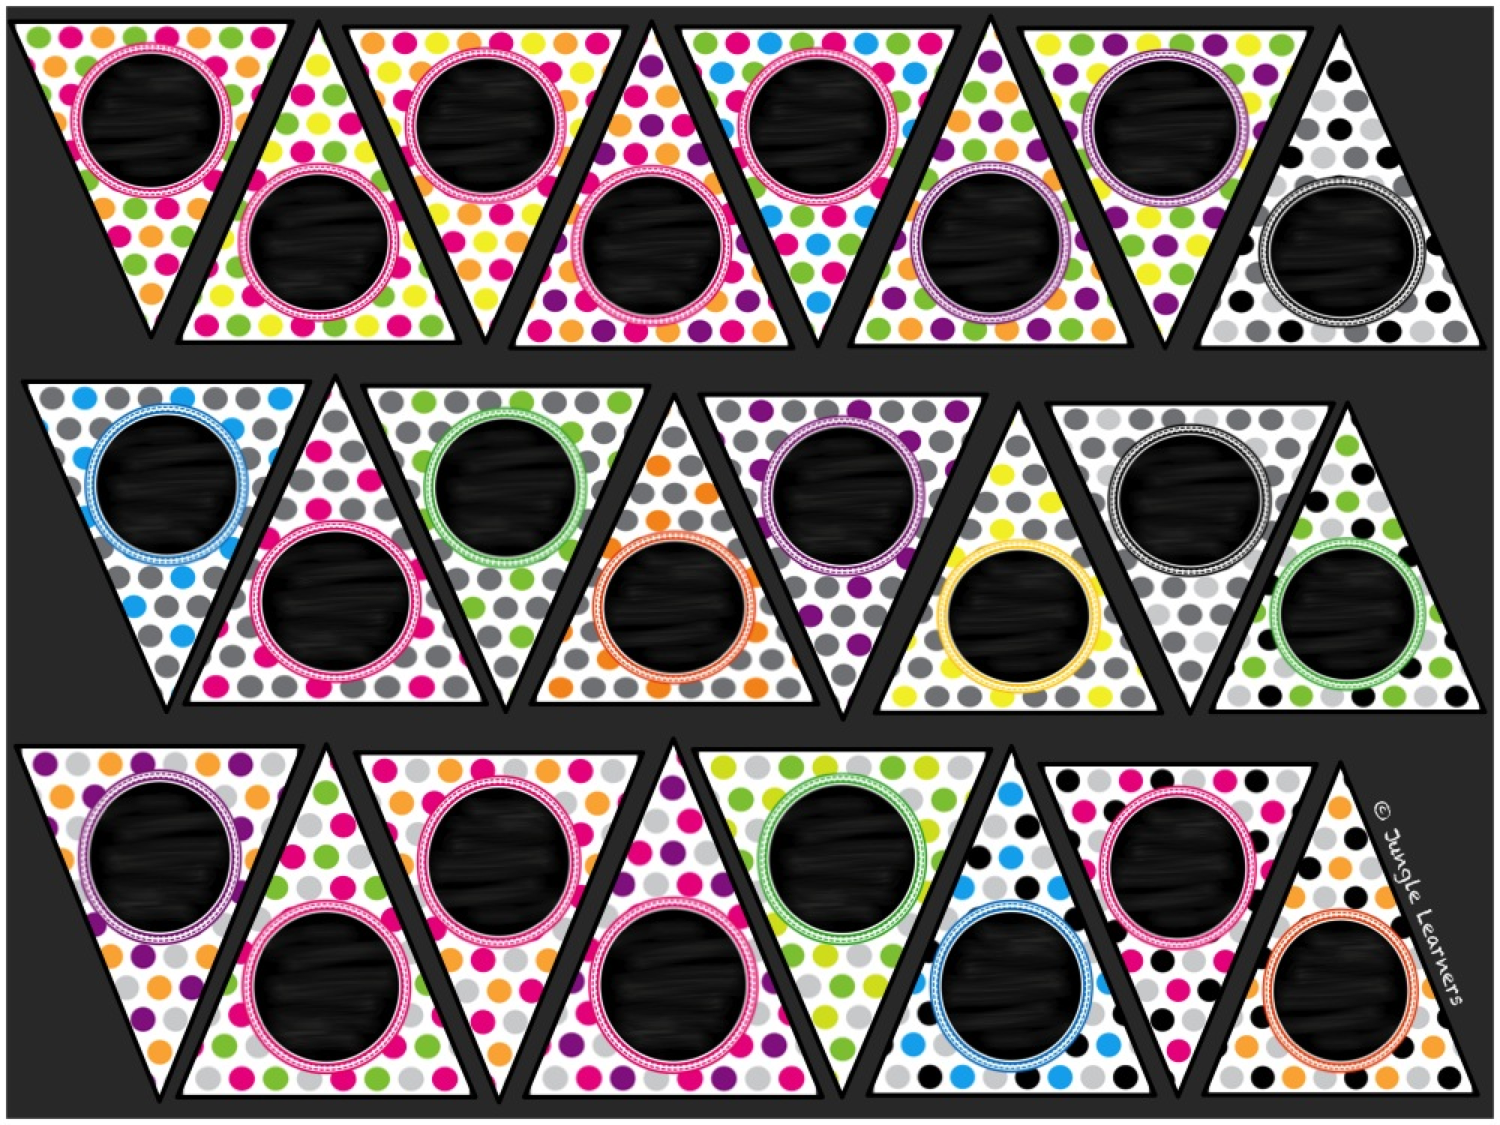 http://www.teacherspayteachers.com/Product/24-Editable-Polka-Dot-Banners-827317